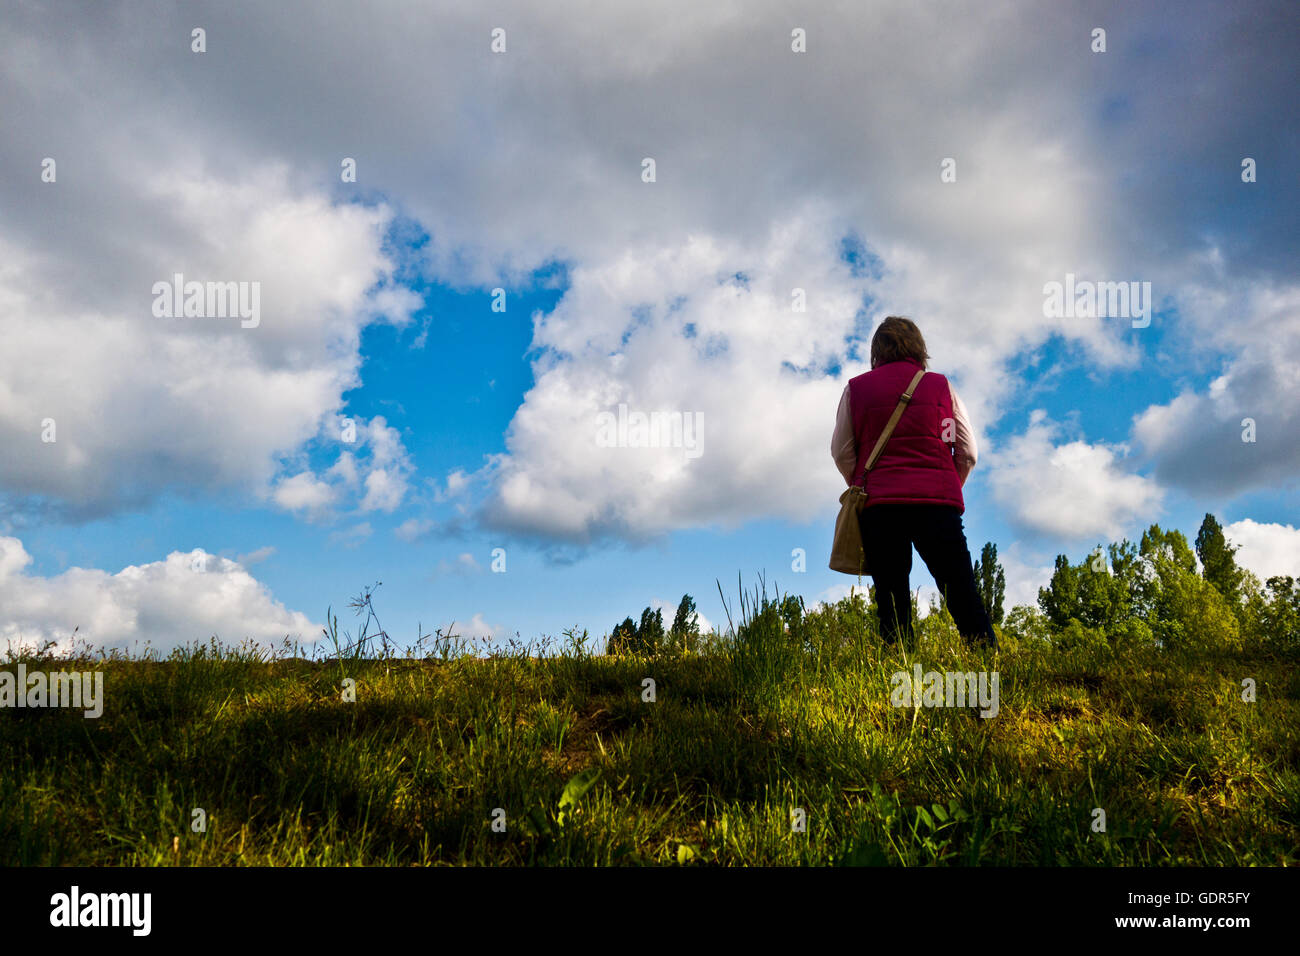 woman standing on the edge of a hill and looking ahead - Stock Image